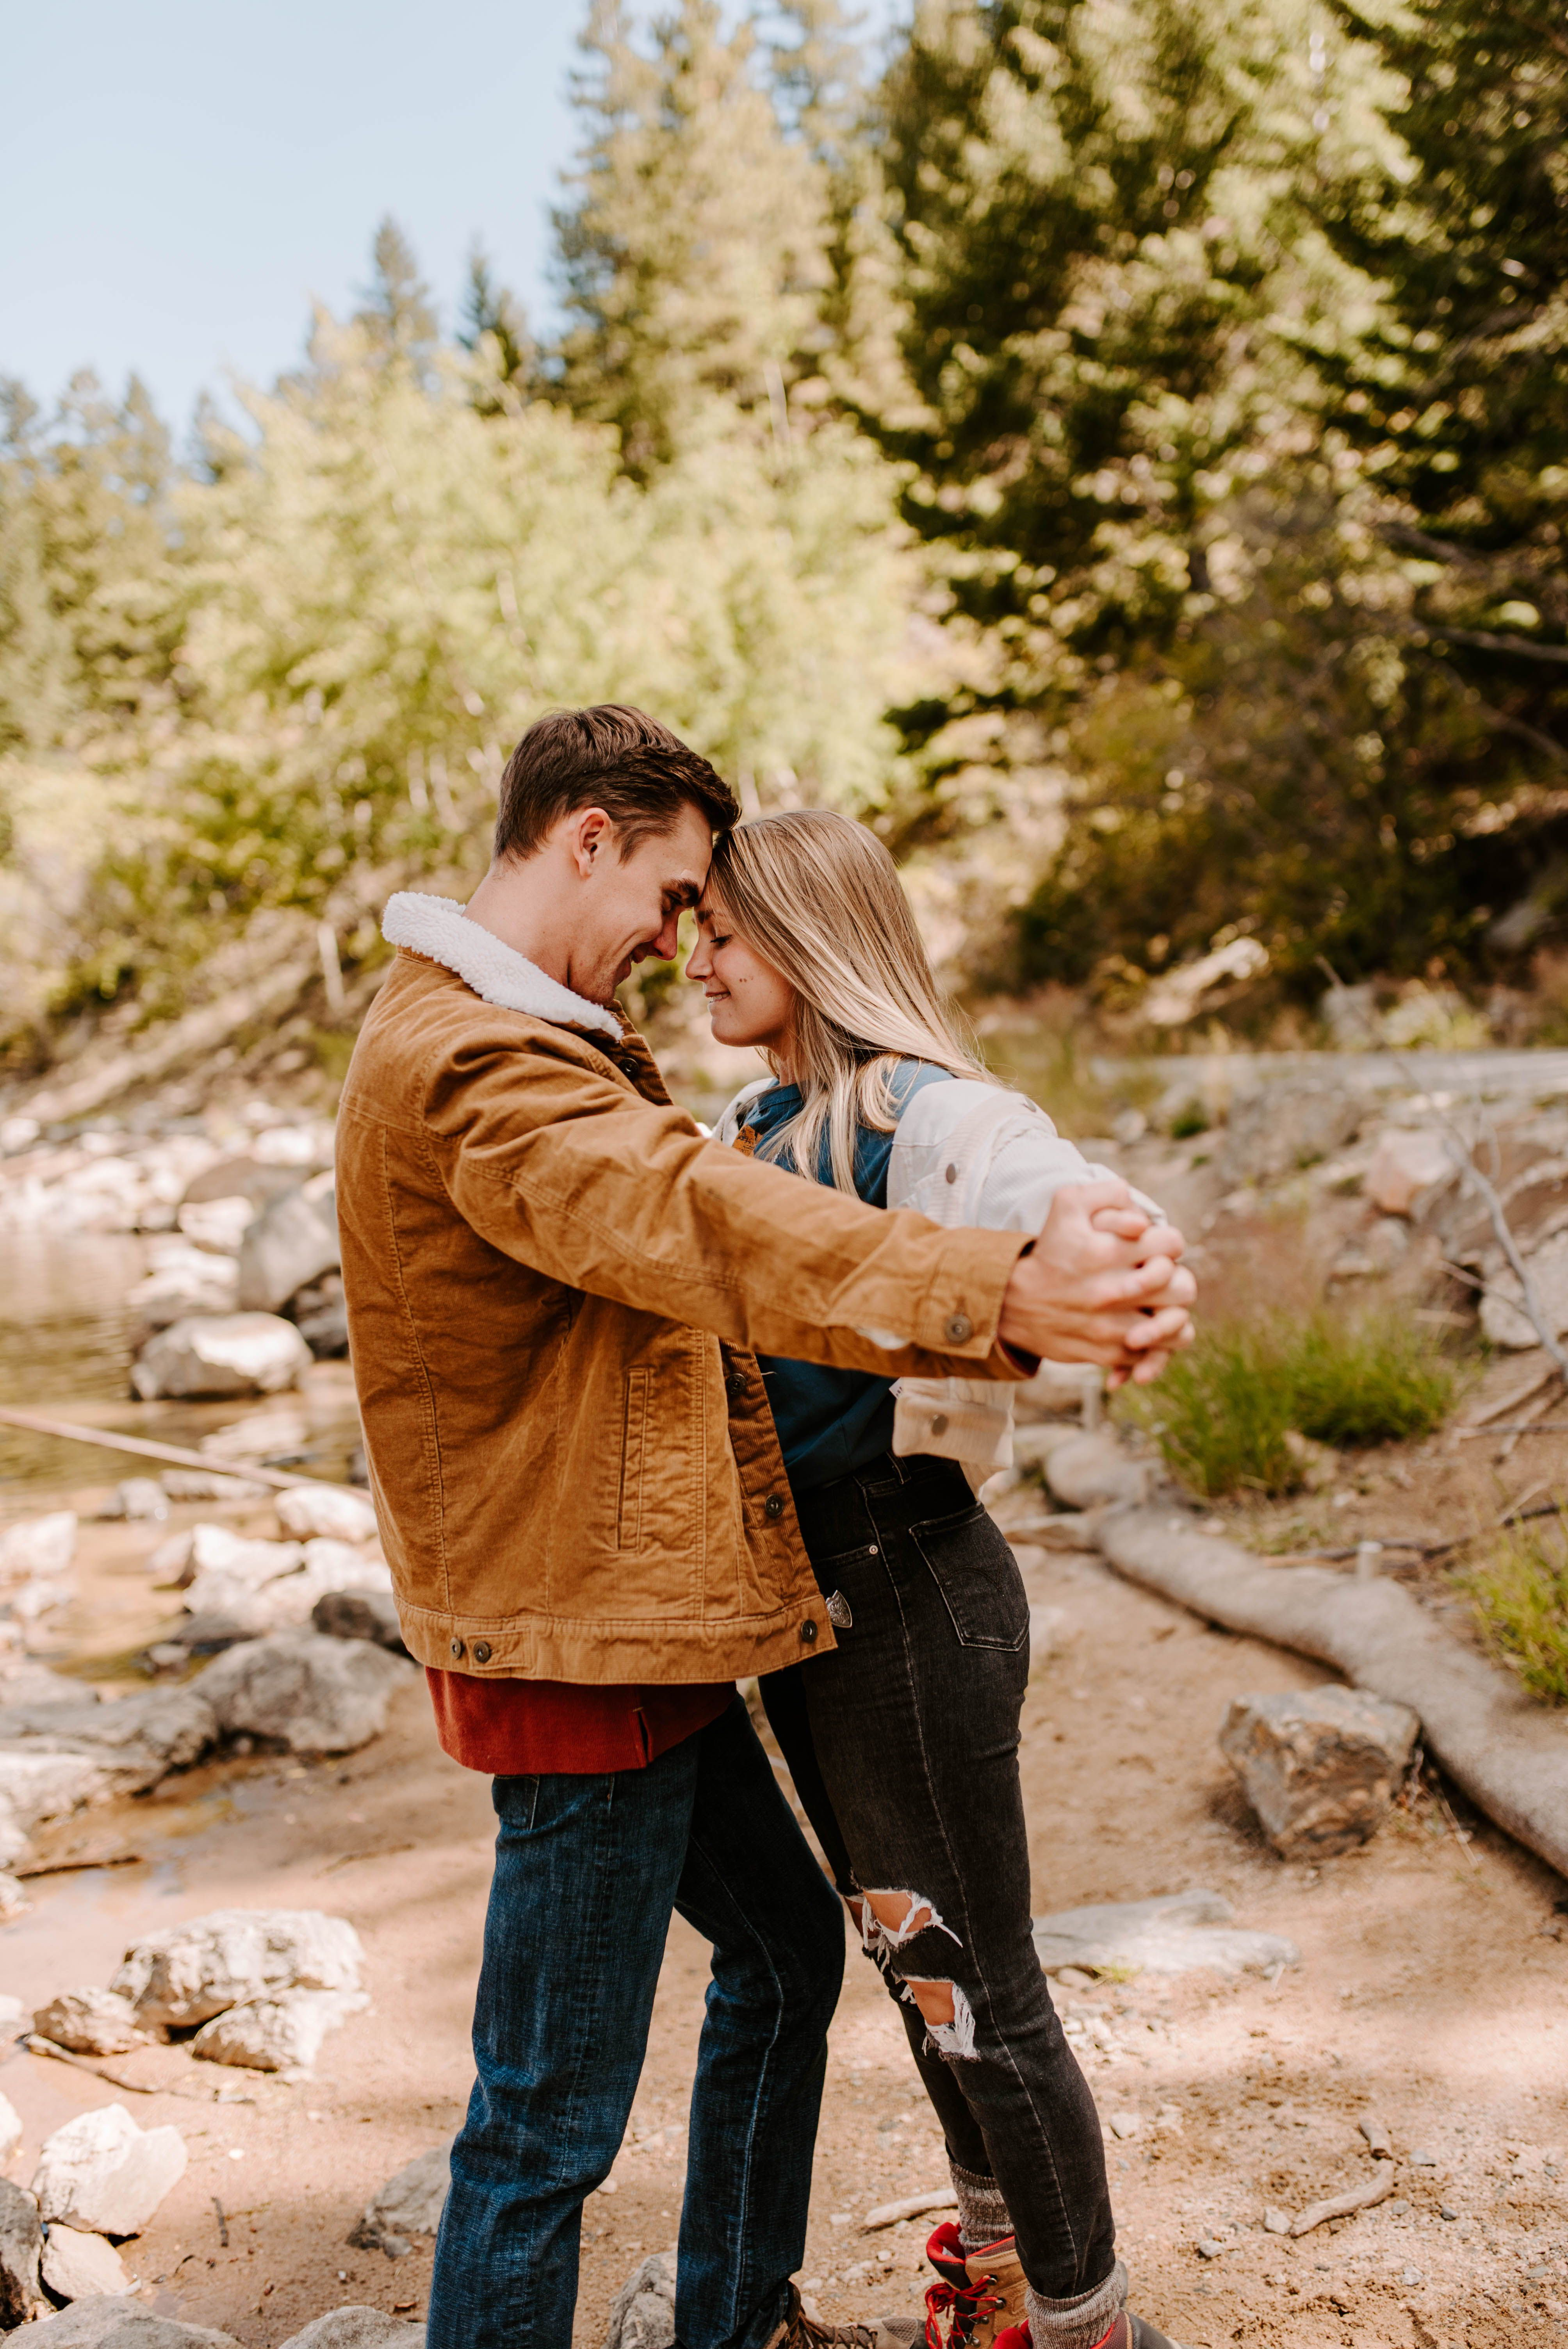 winter park engagement session Winter Park, CO in 2020